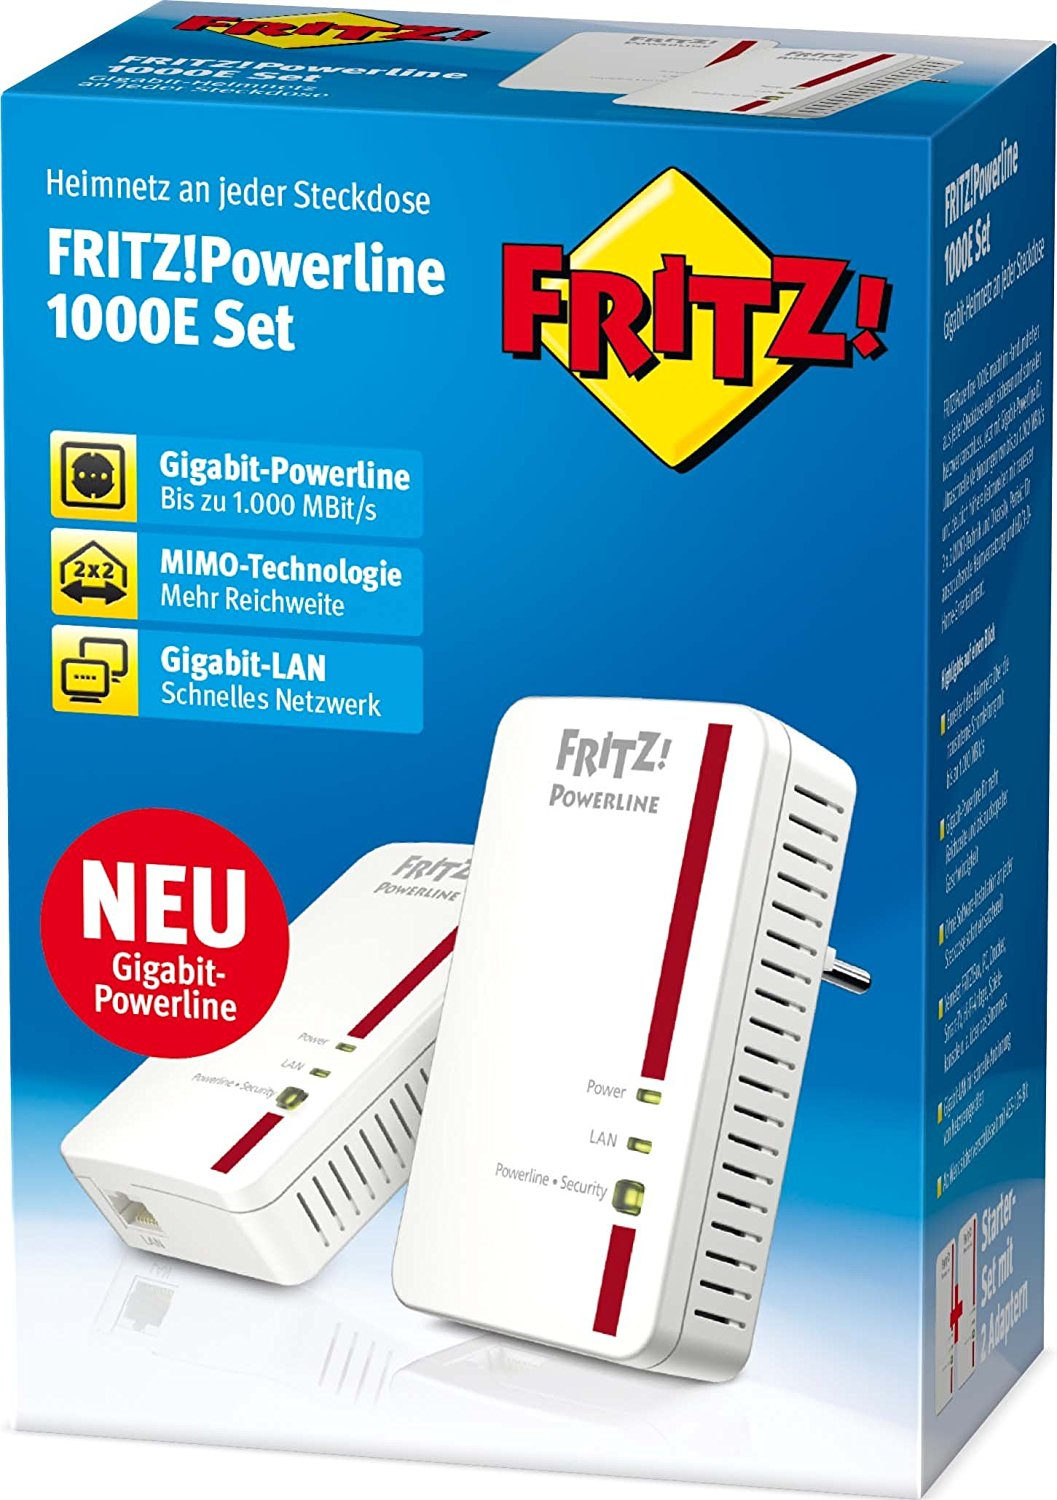 AVM FRITZ!Powerline 1000E Set - Weiß